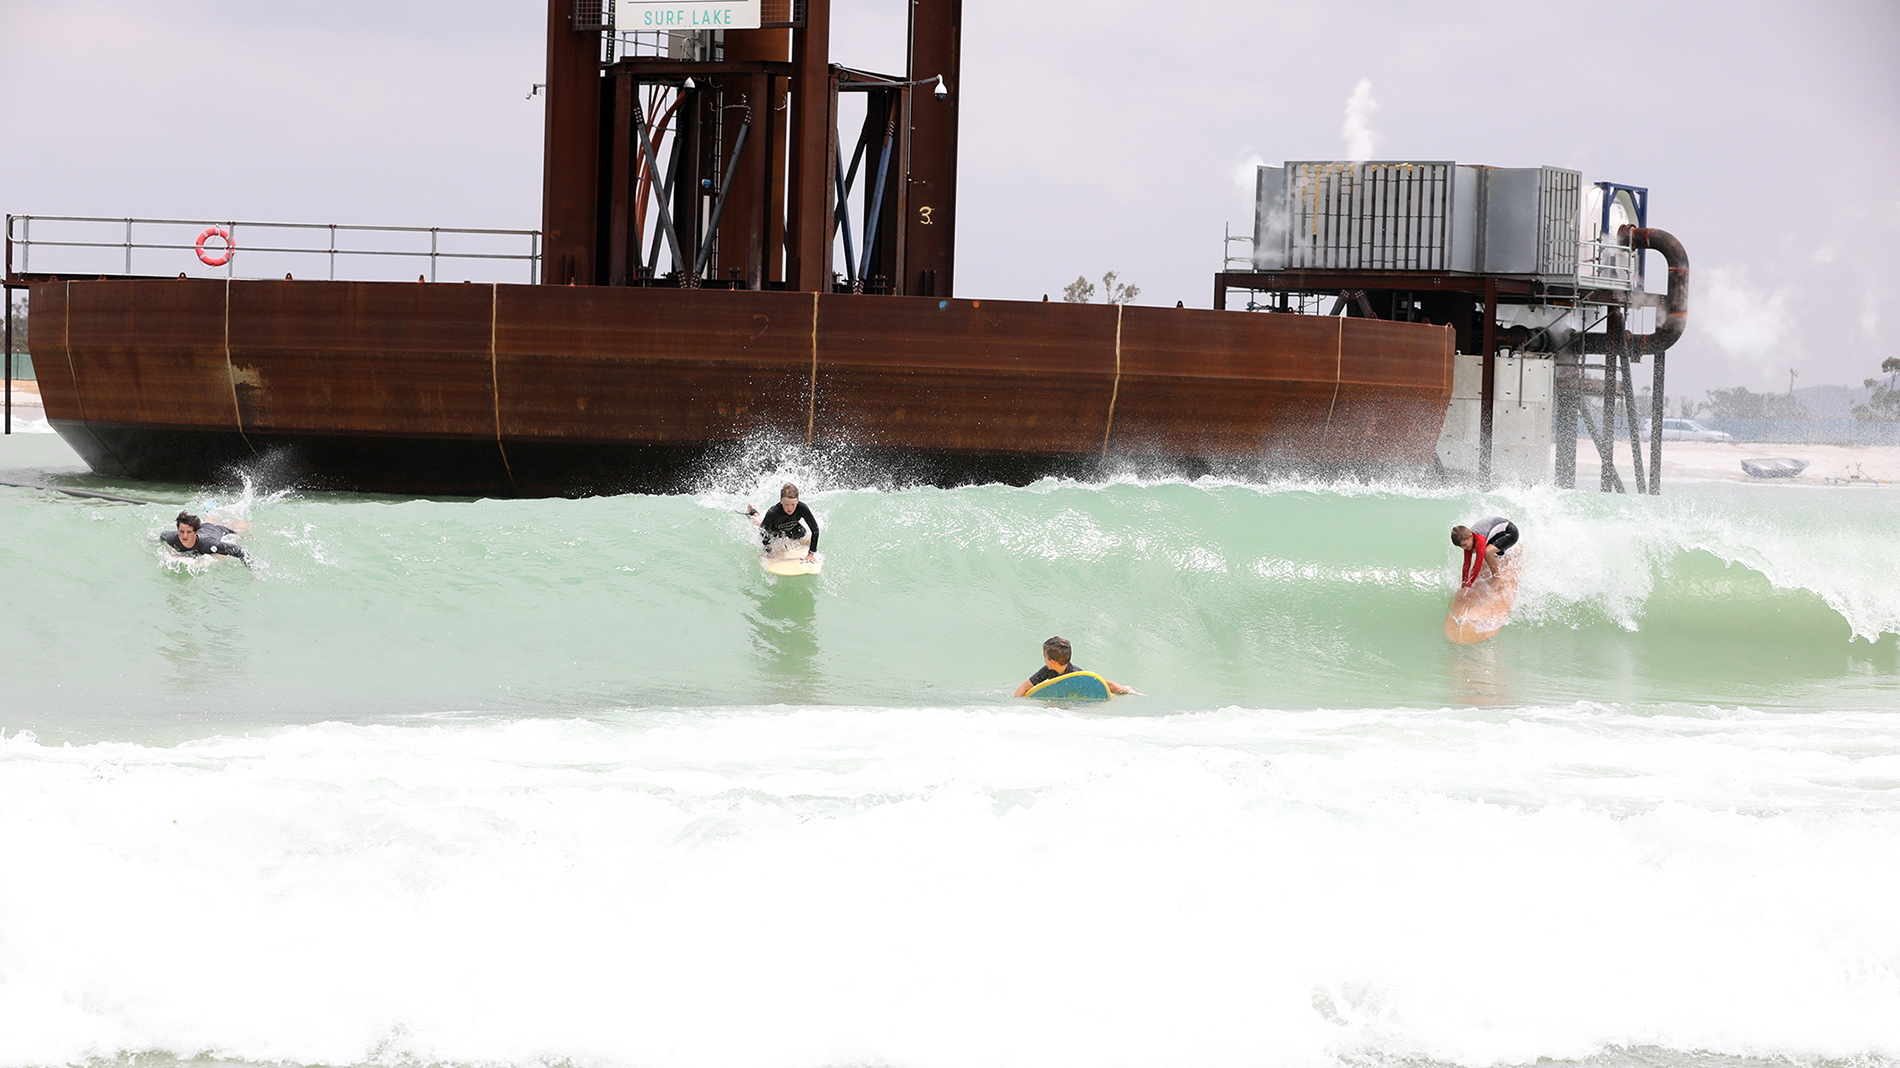 Groms at Surf Lakes in Yeppoon